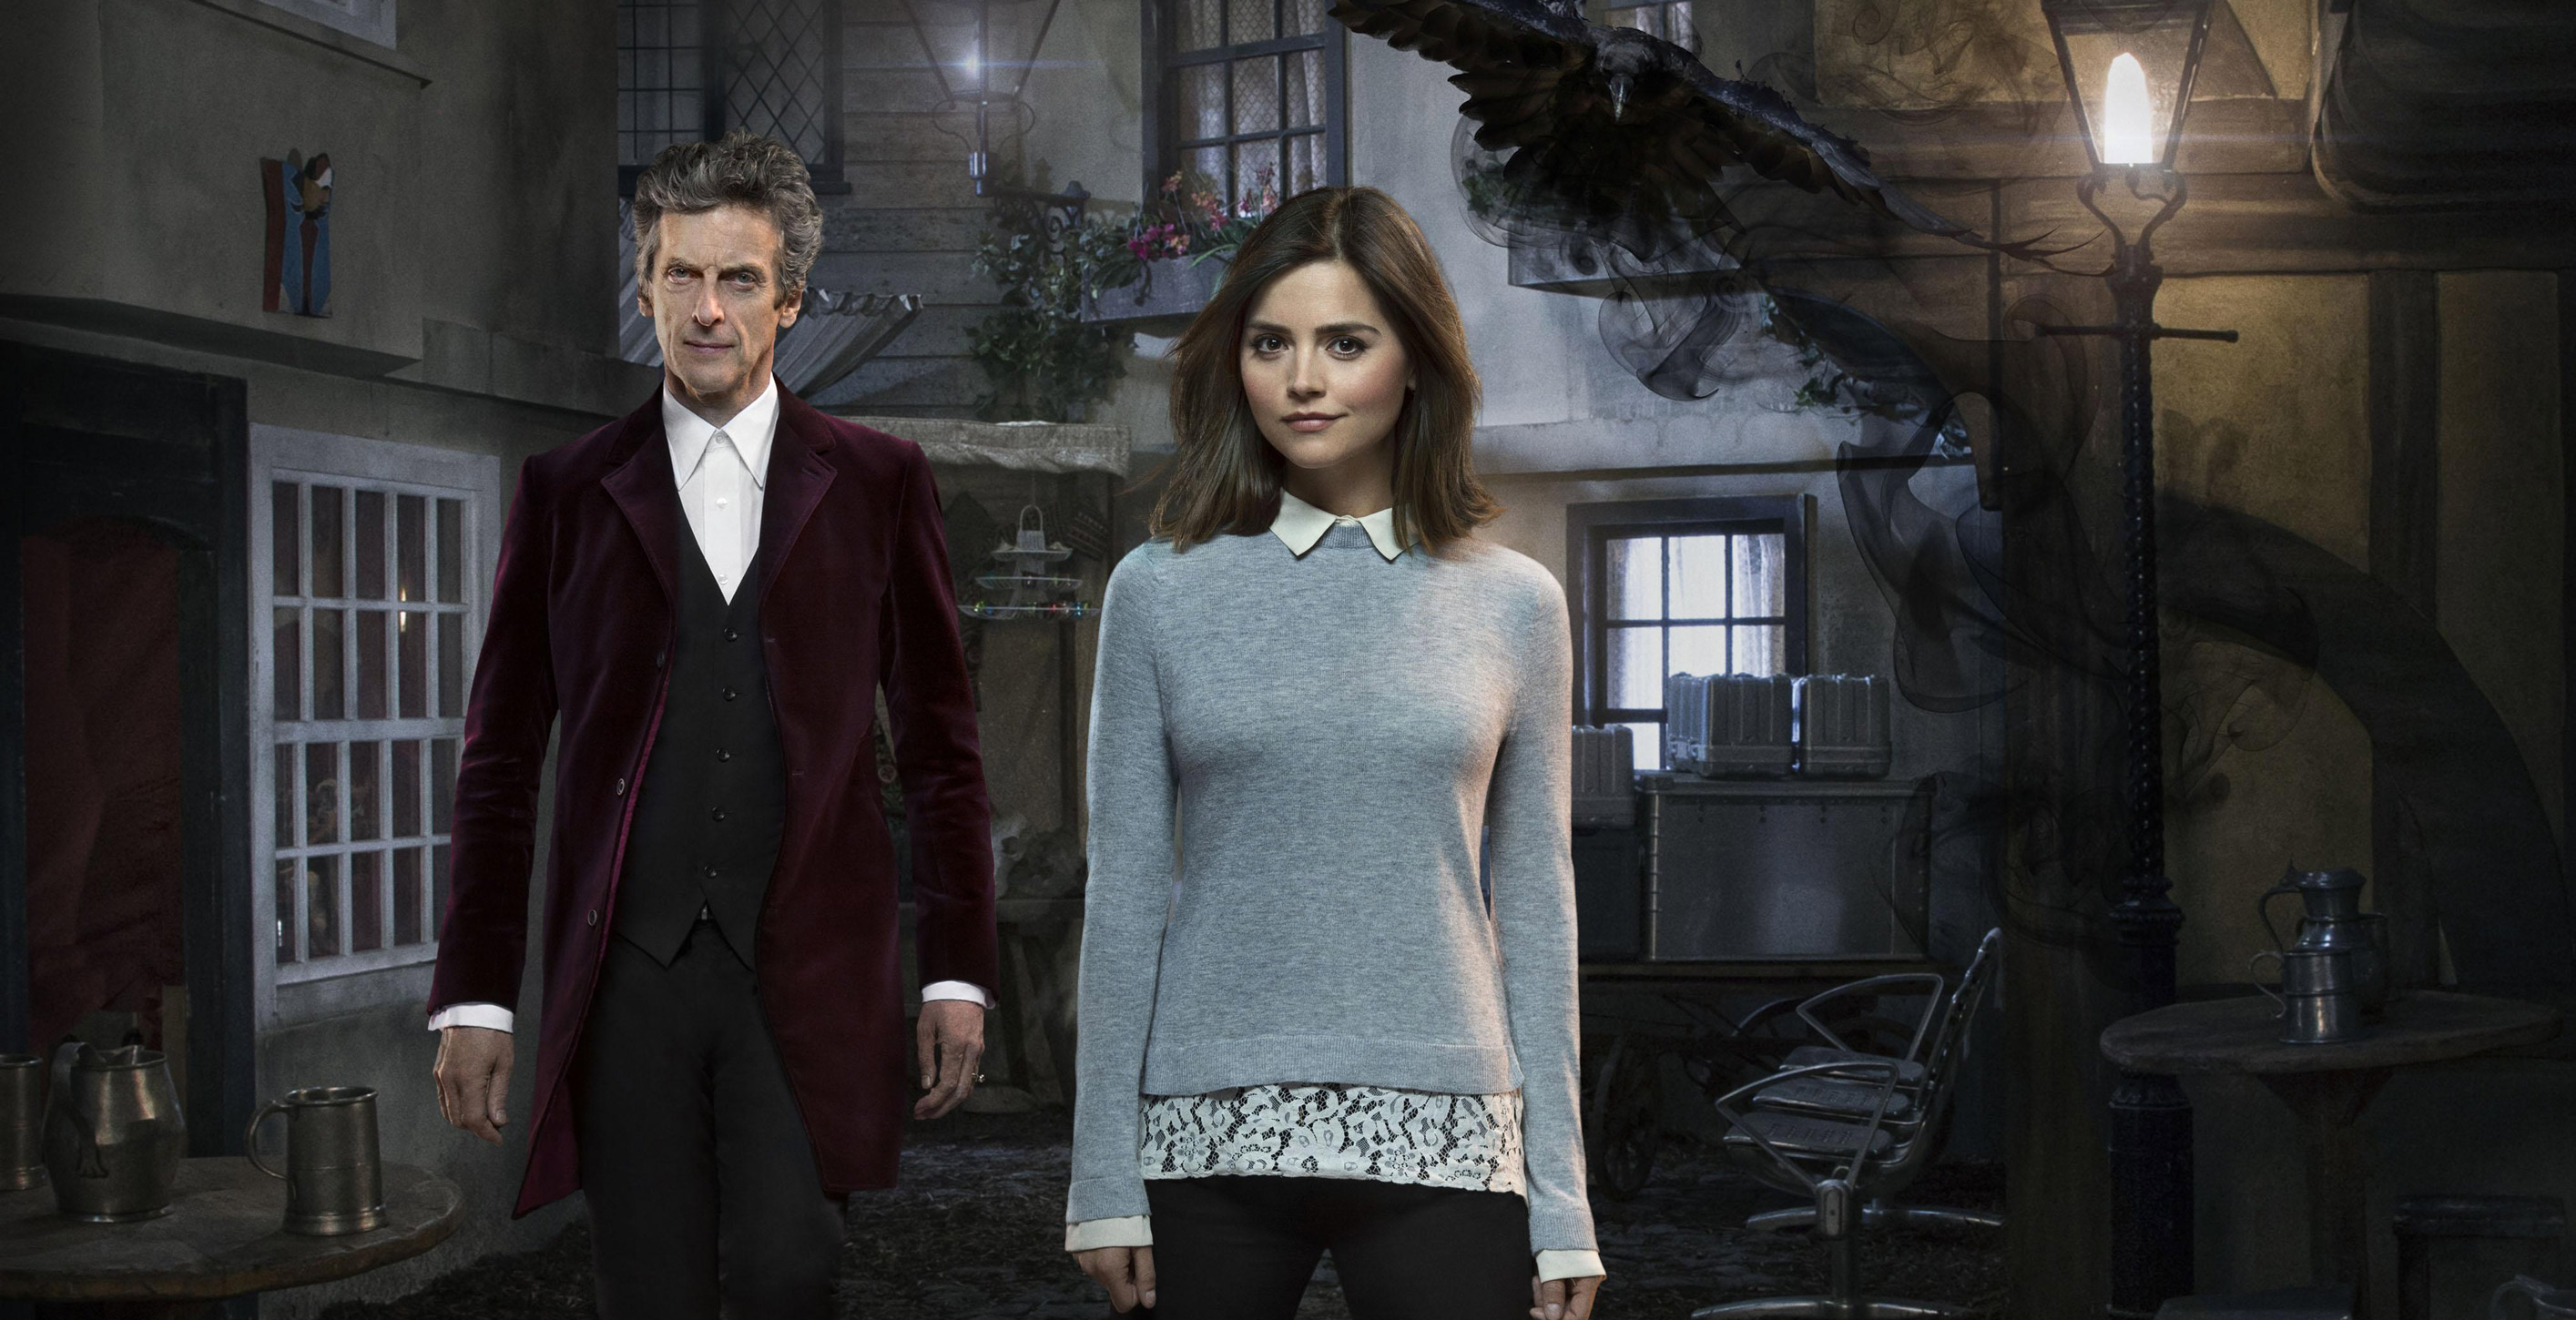 doctor who series 9 - photo #24